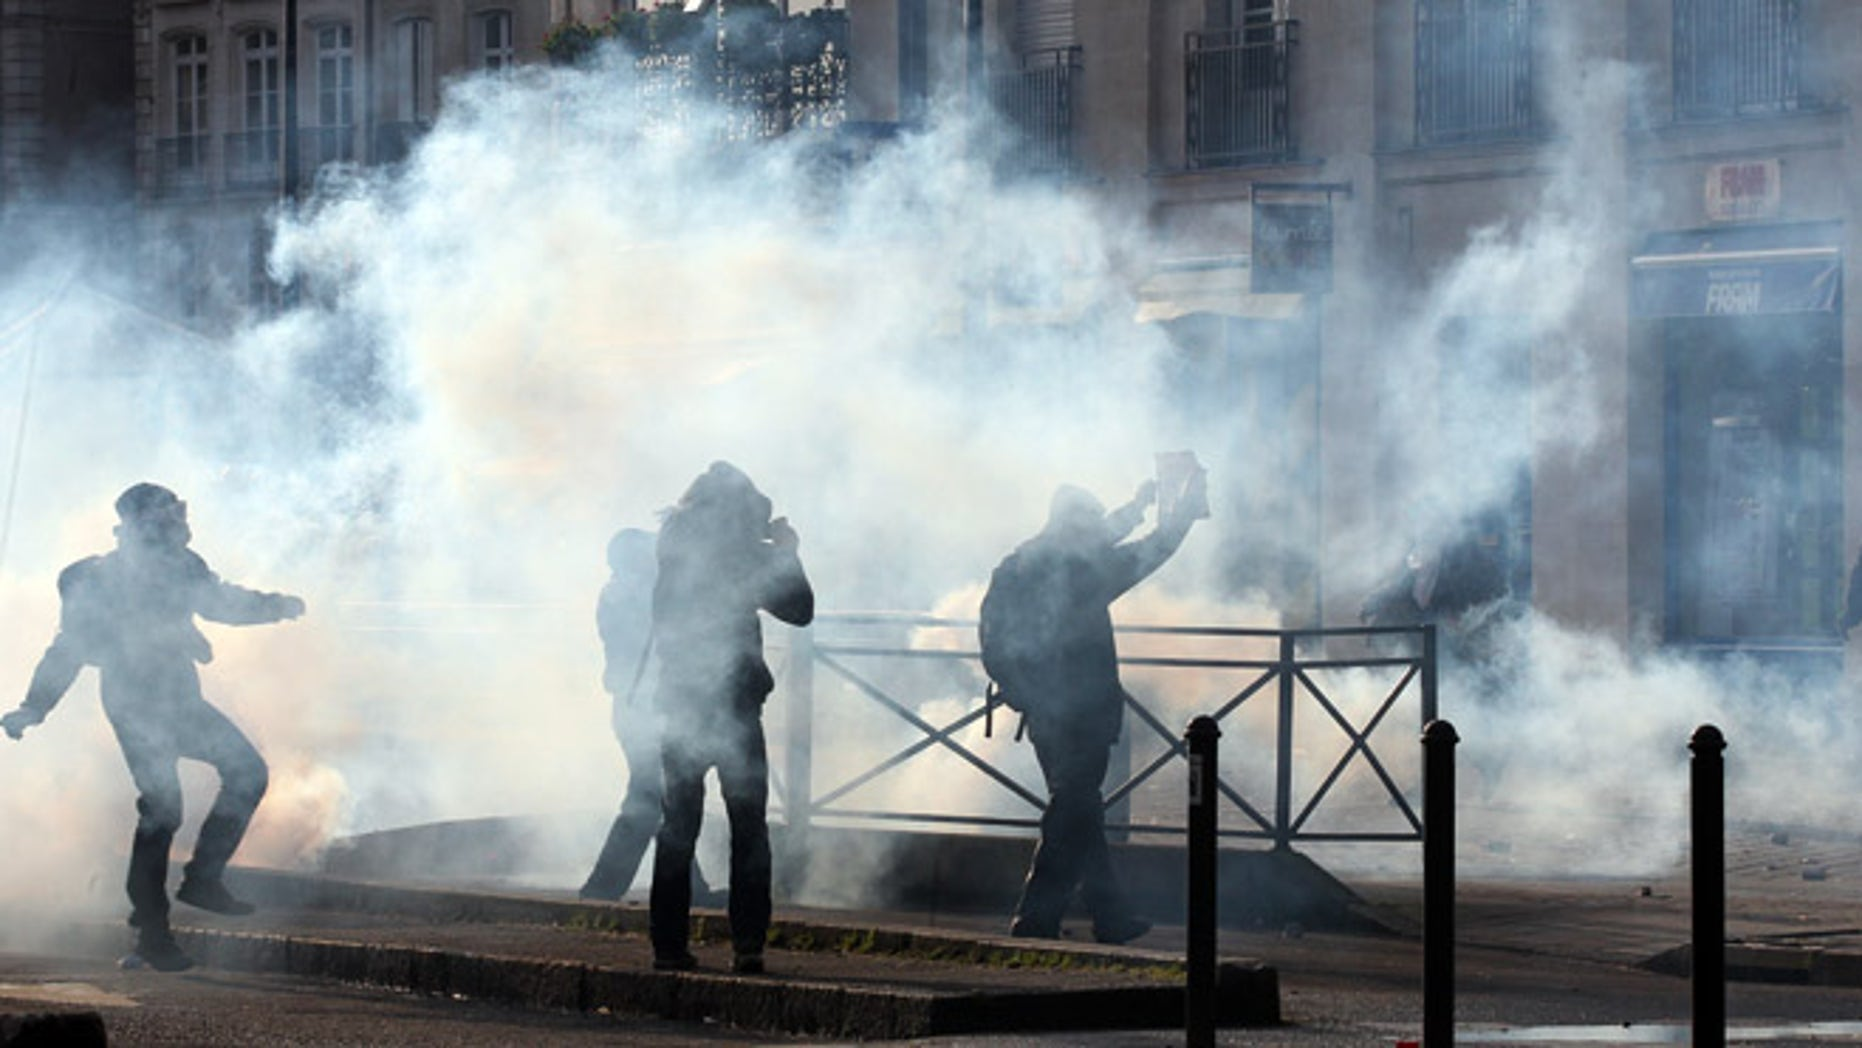 Feb. 22, 2014: Demonstrators clash with French riot police during a demonstration in Nantes as part of a protest against a project to build an international airport, in Notre Dame des Landes, near Nantes.